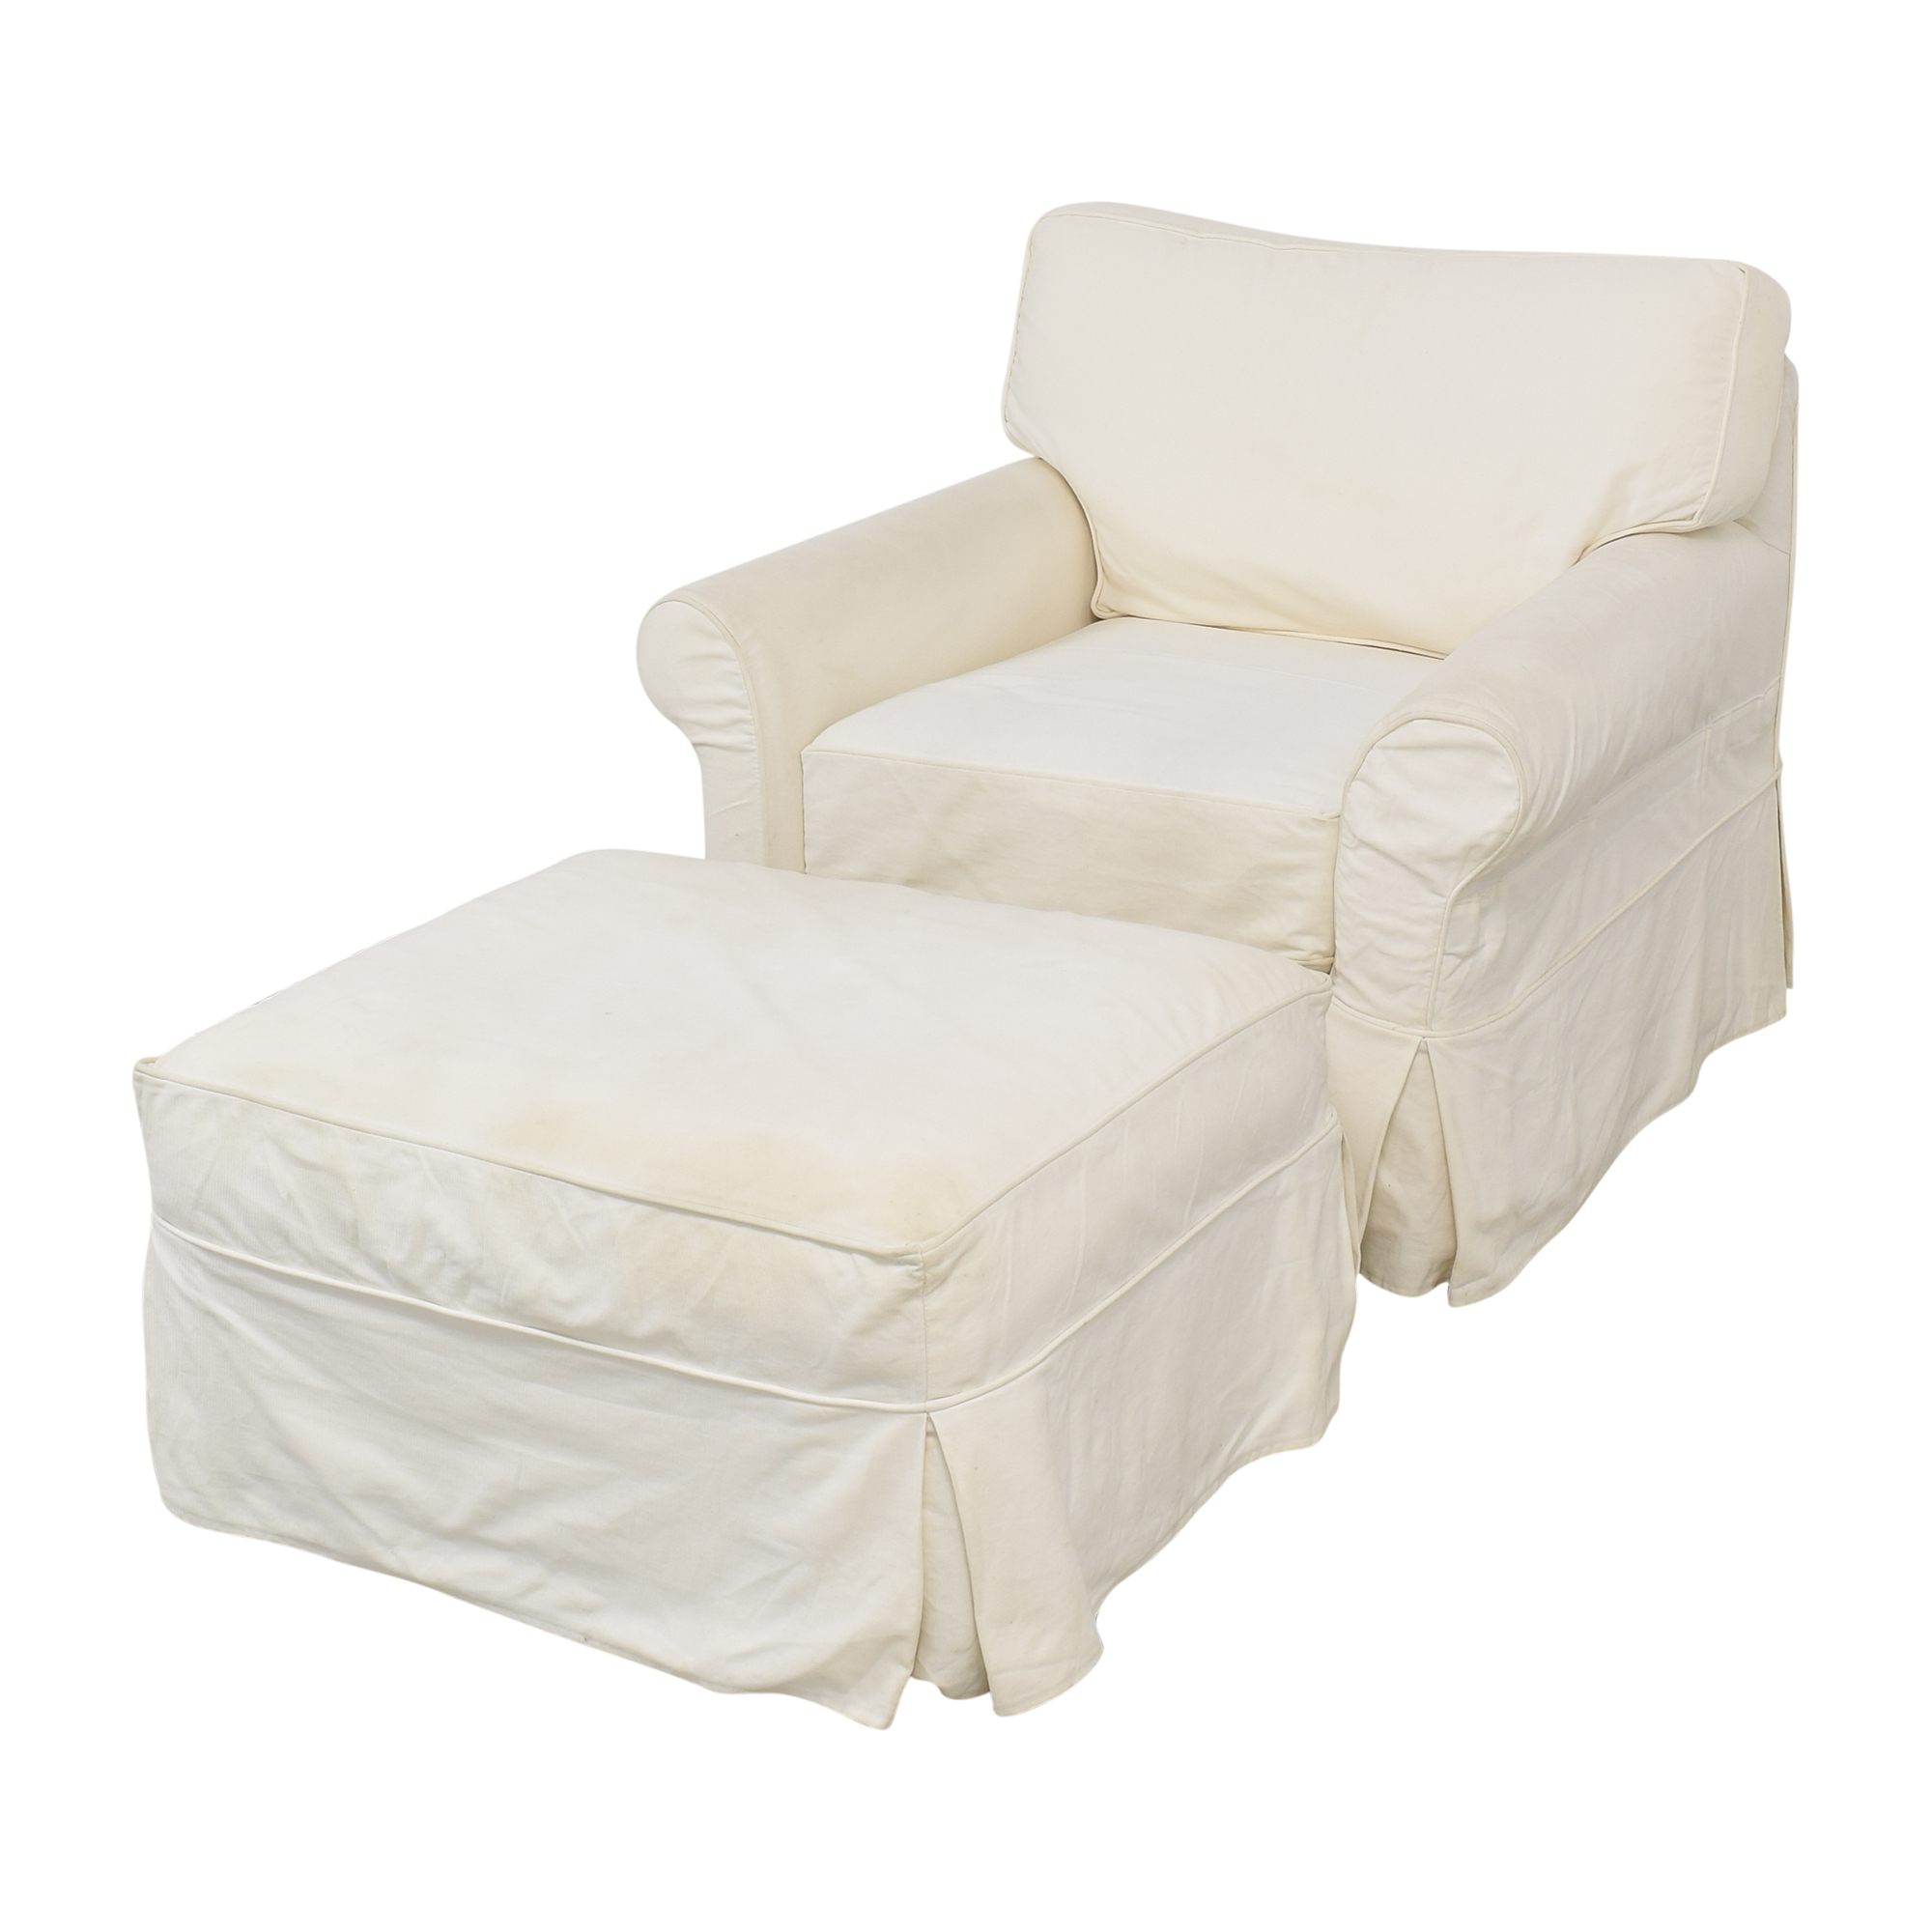 Crate & Barrel Crate & Barrel Slipcovered Arm Chair with Ottoman nyc